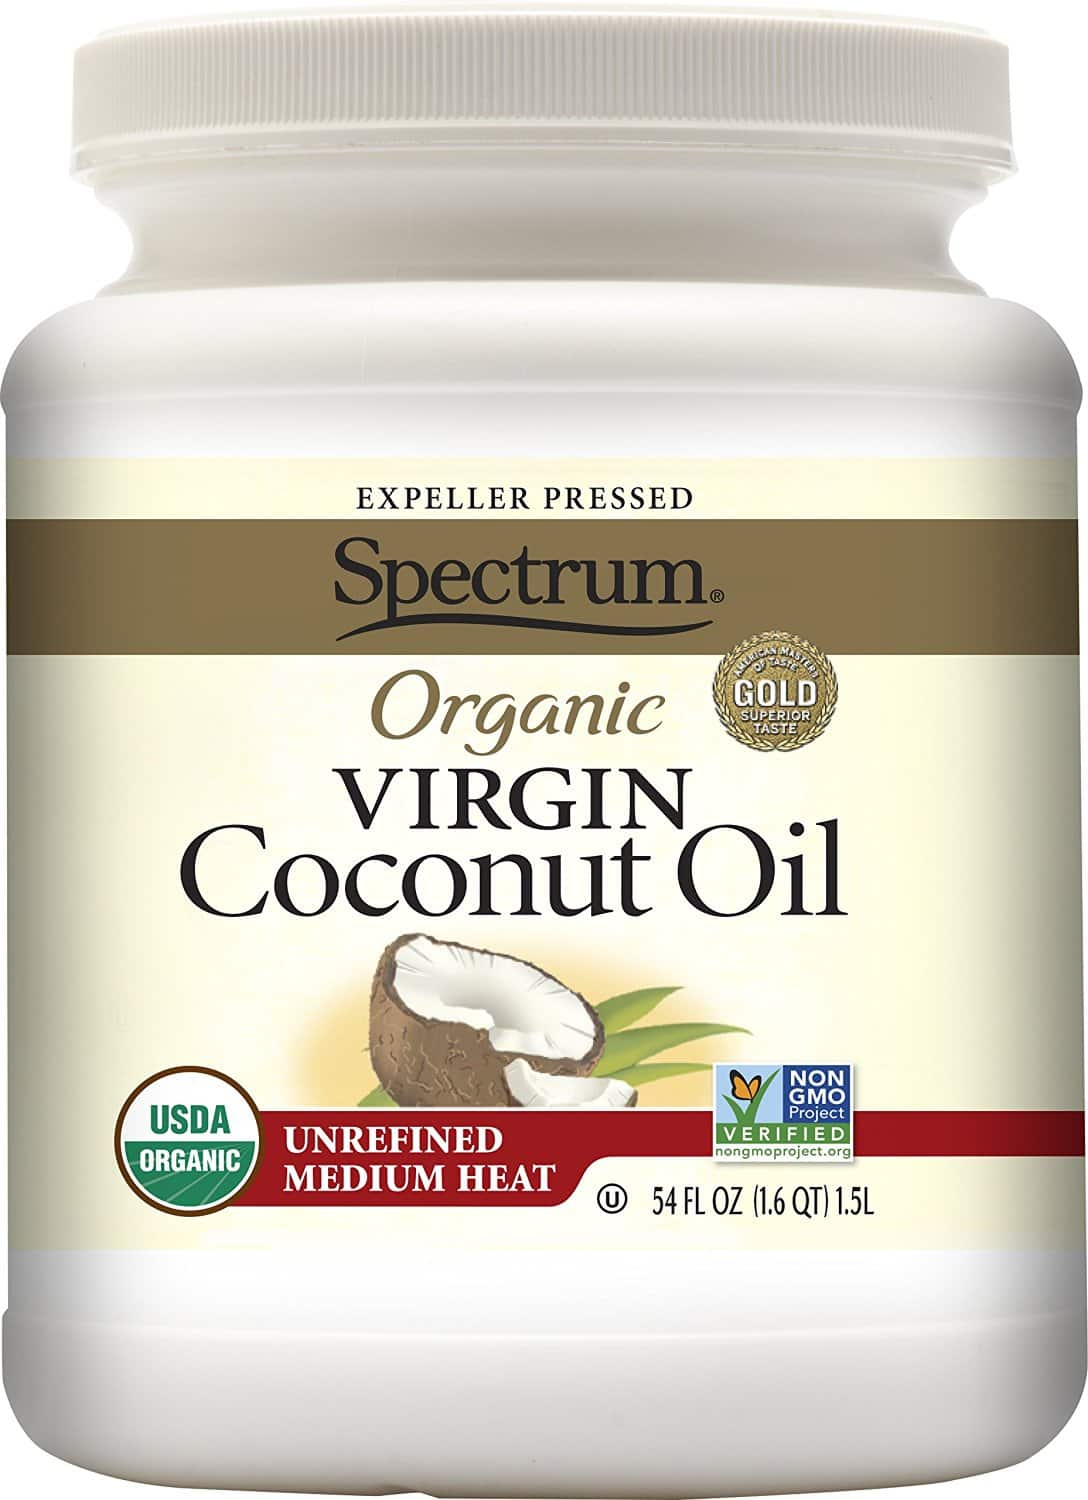 54oz. Spectrum Organic Virgin Coconut Oil $12.94 at Lowest price+ Free Shipping $14.92 otherwise with S&S